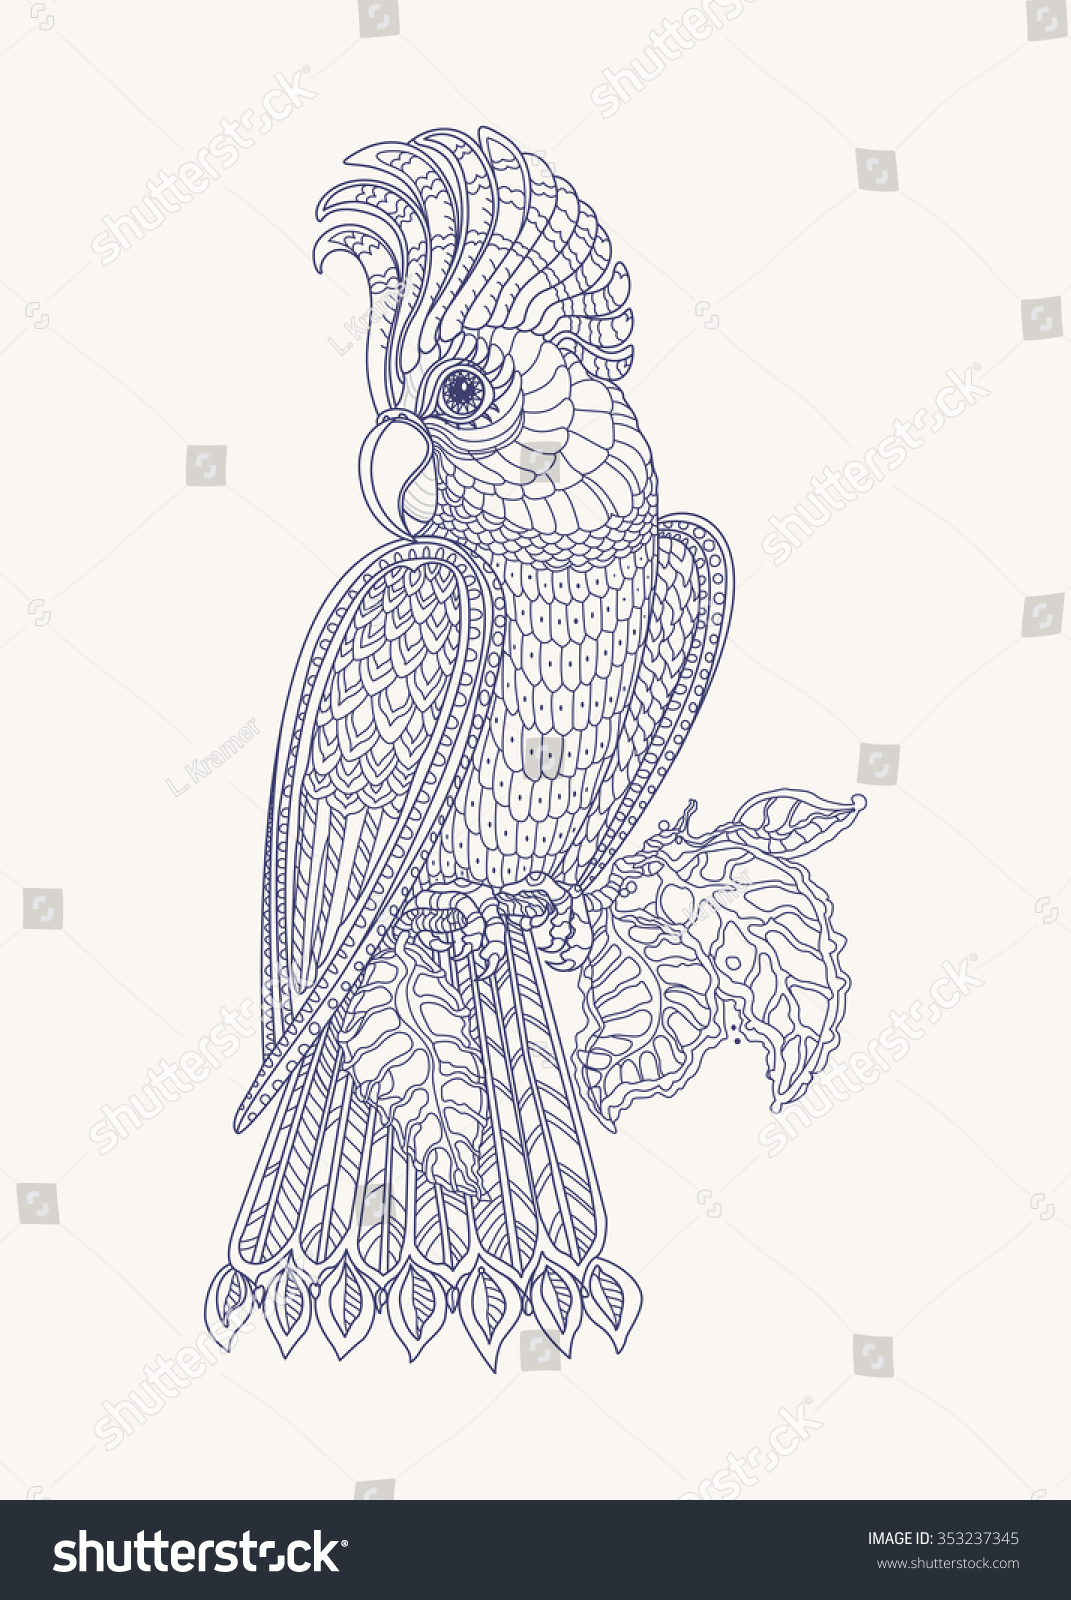 Contour Line Drawing Bird : Exotic bird fantastic branches leaves contour indigo